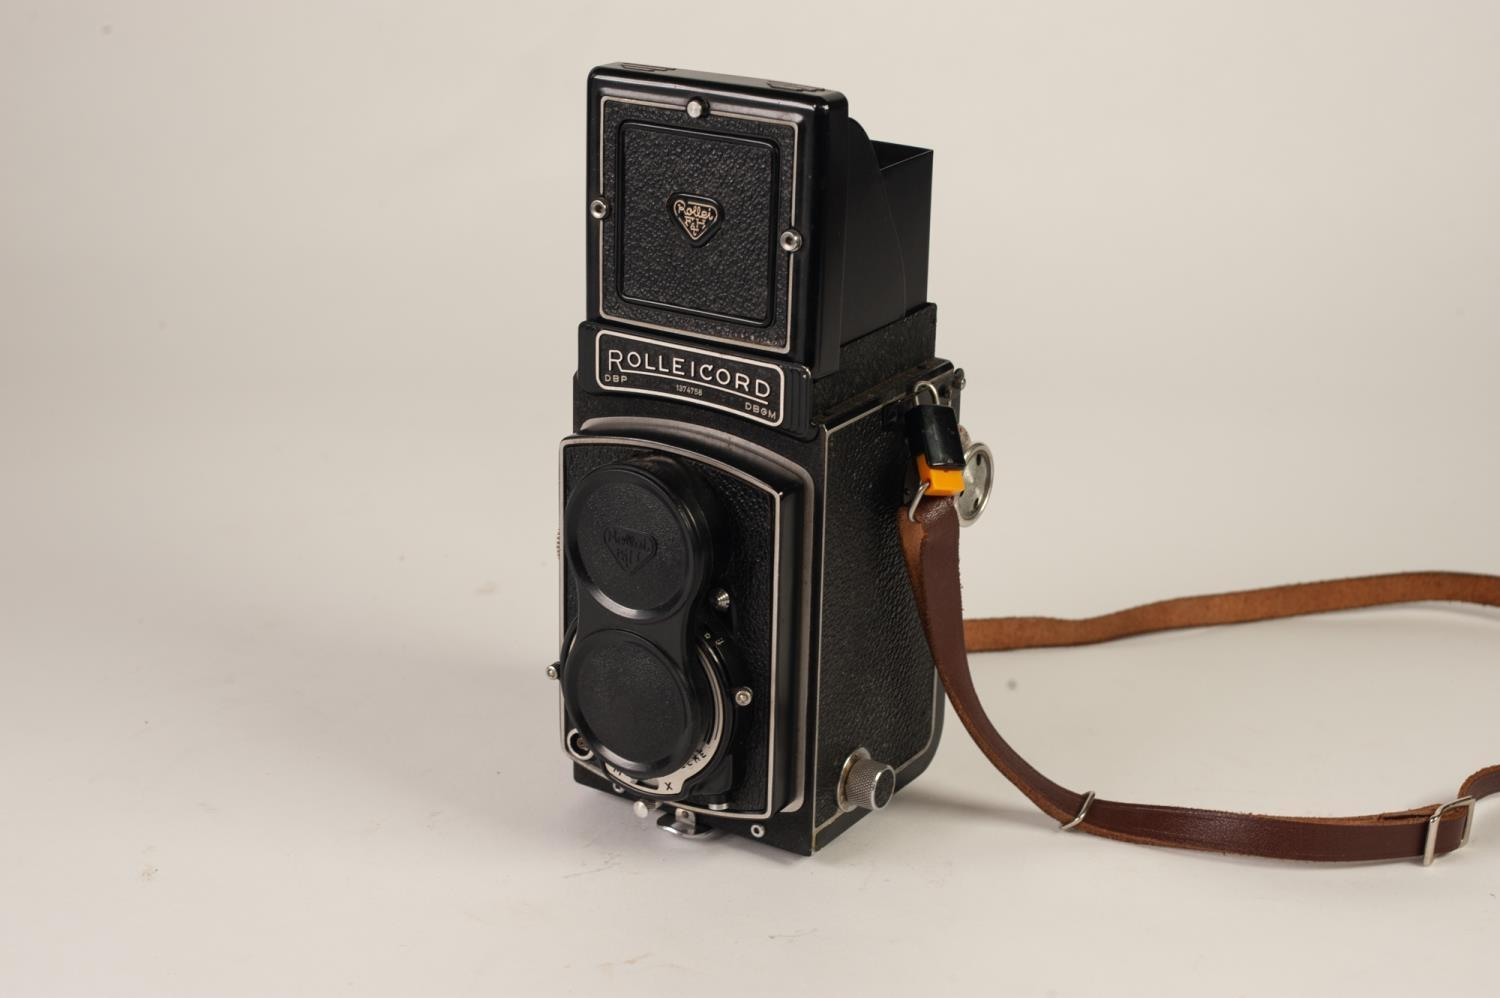 Lot 210 - LEATHER CASED FRANKE AND HEIDECKE ROLLEICORD IV CAMERA, Xenar 75mm 1:3.5/75 LENS, Synchro-Compur